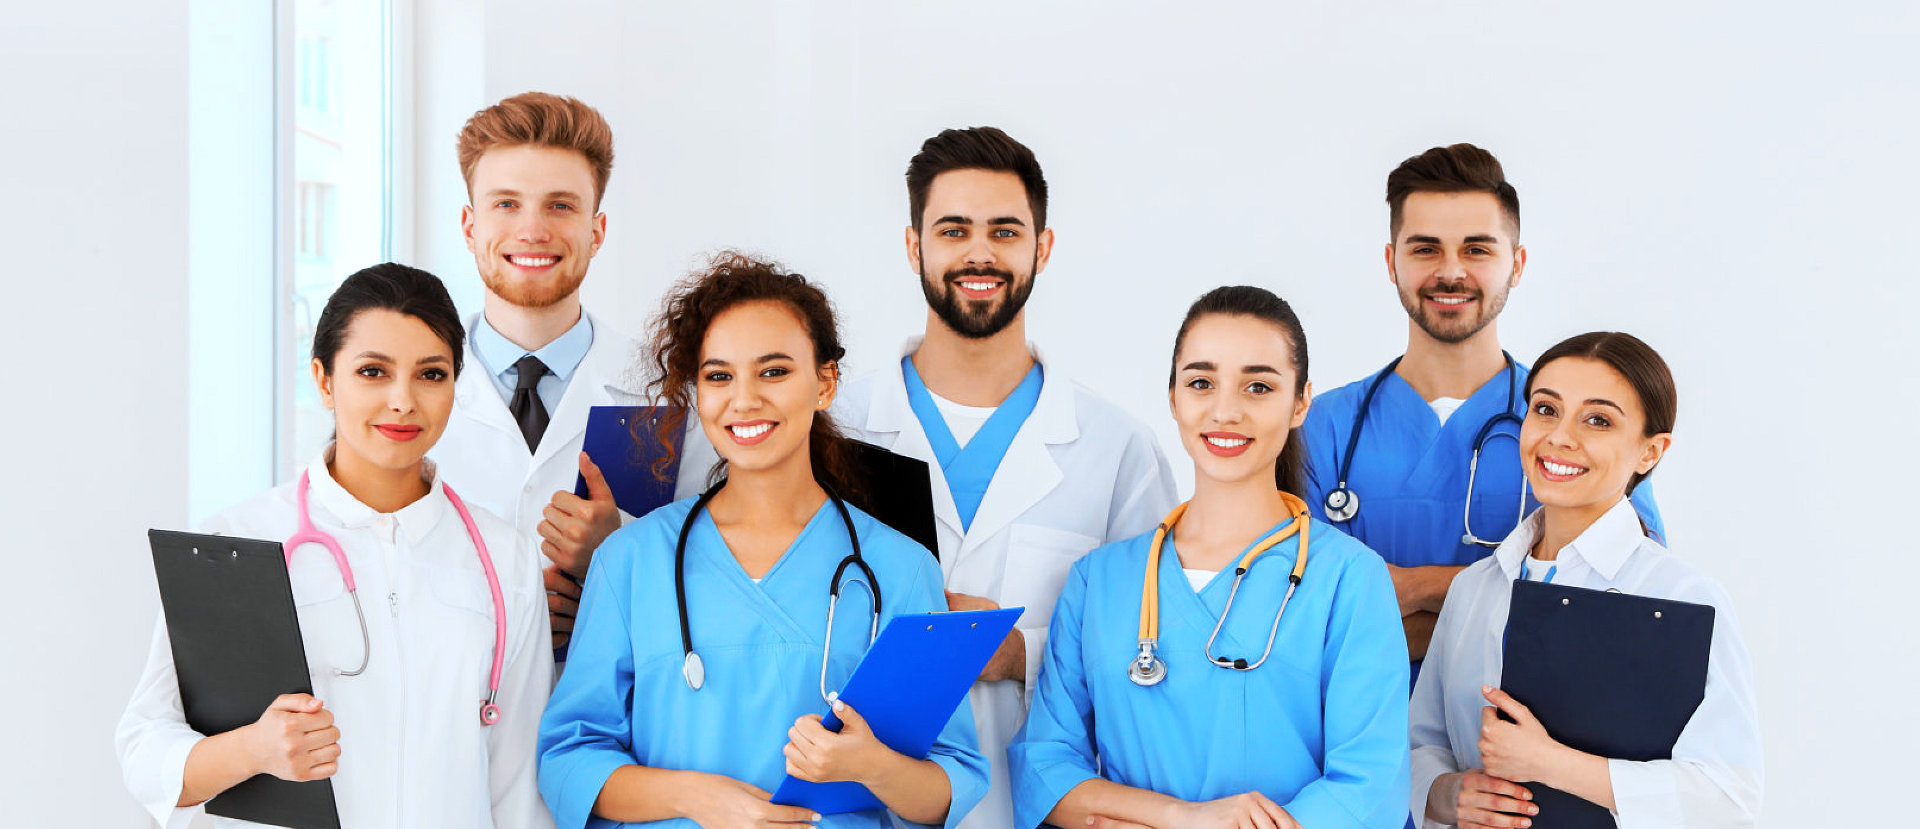 group of doctor and nurses smiling